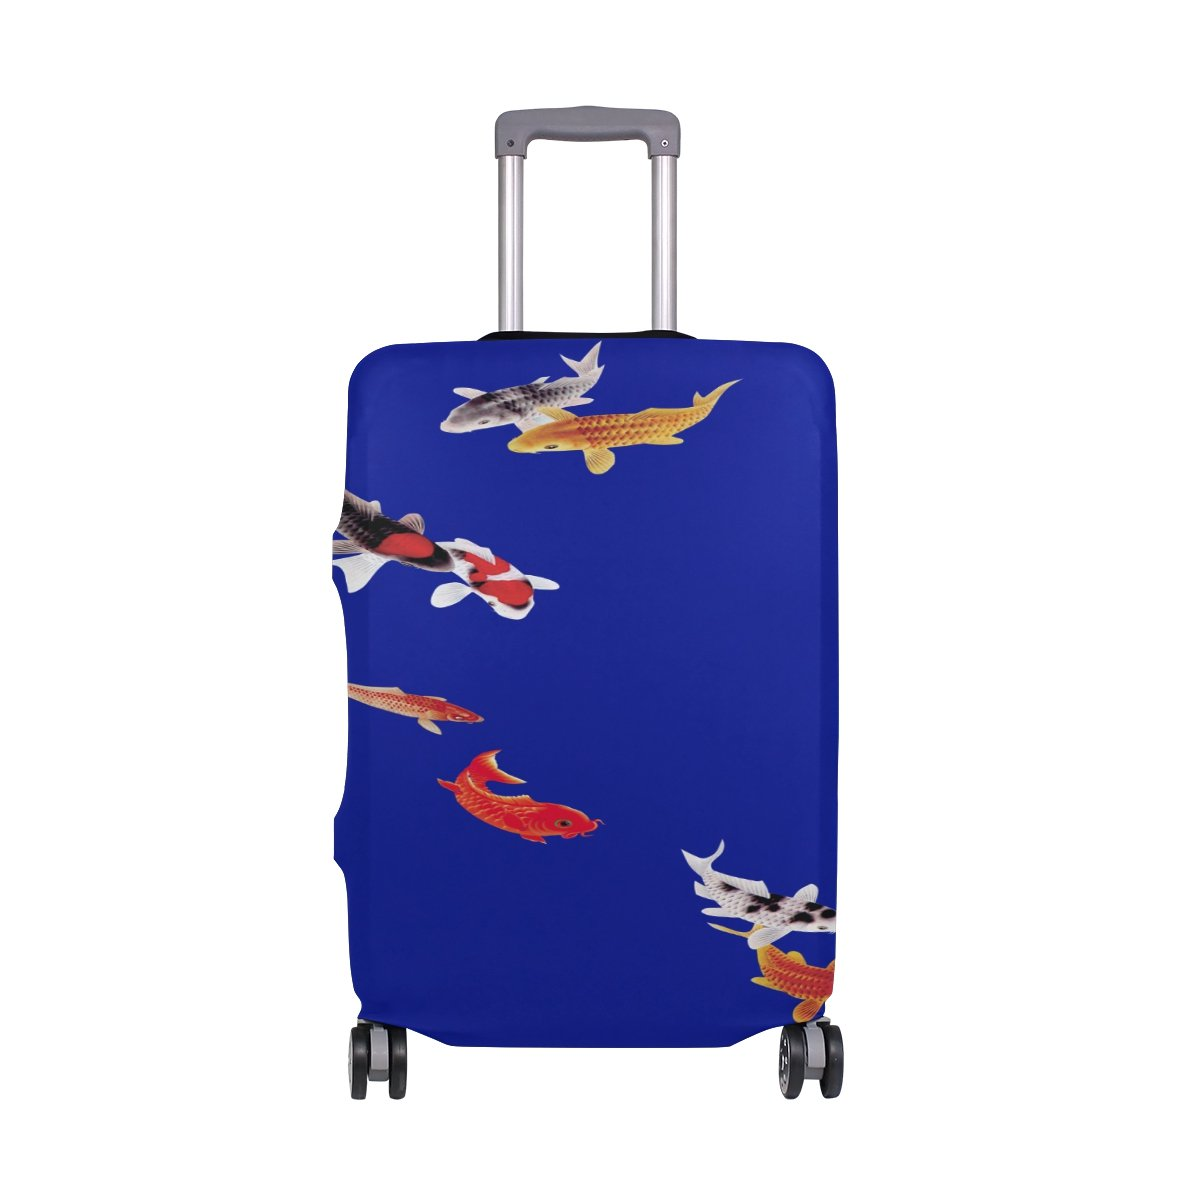 Beautiful Koi Carp Fish Goldfish Fine Travel Luggage Cover Washable Spandex Baggage Suitcase Cover Protector Carry On Covers Fits S 18-20 in